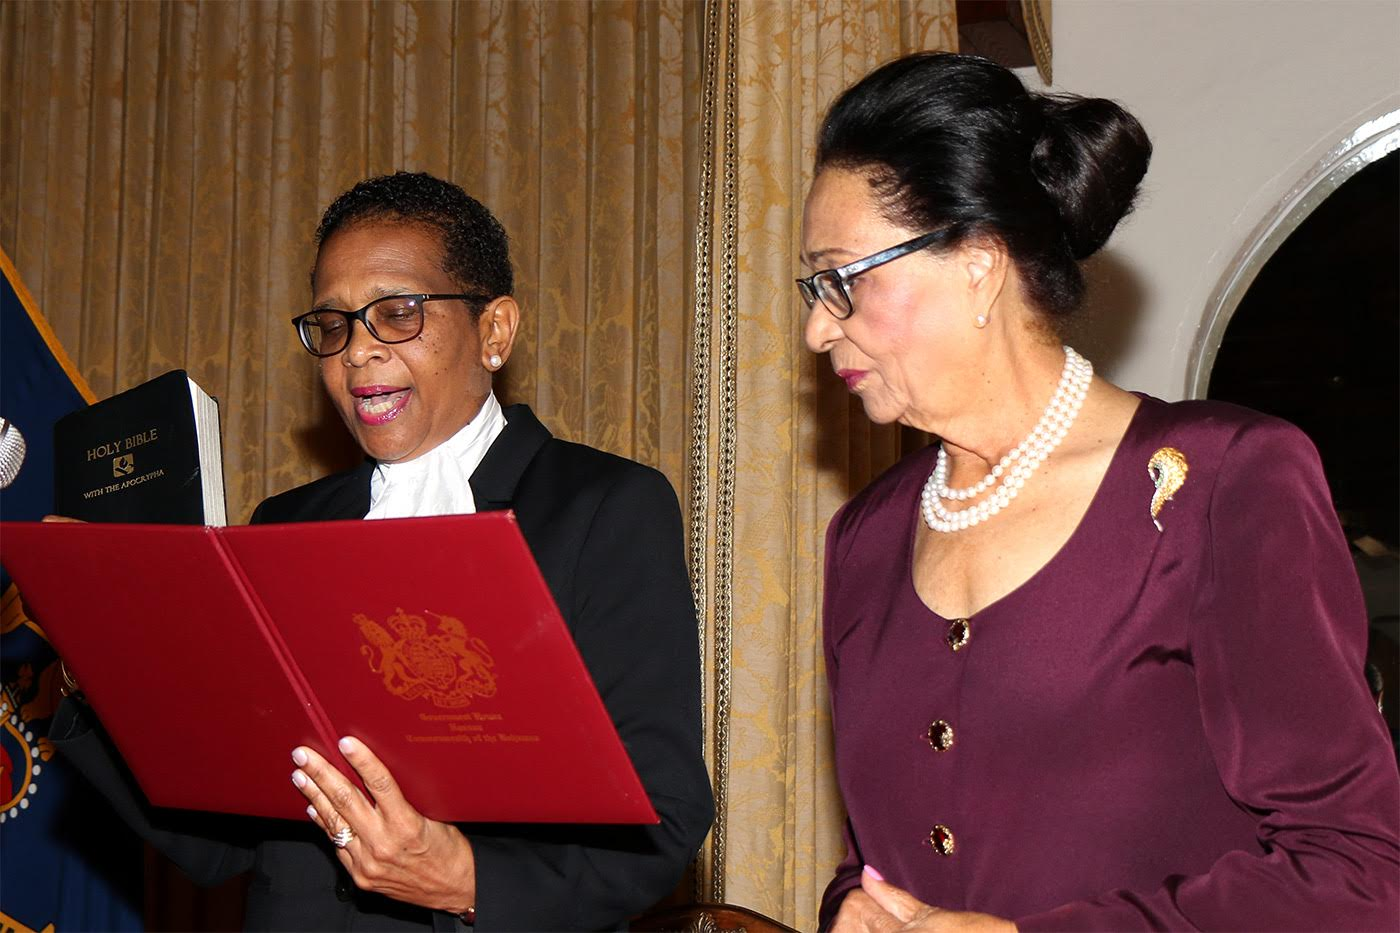 G. Diane Stewart sworn in as Justice of the Supreme Court